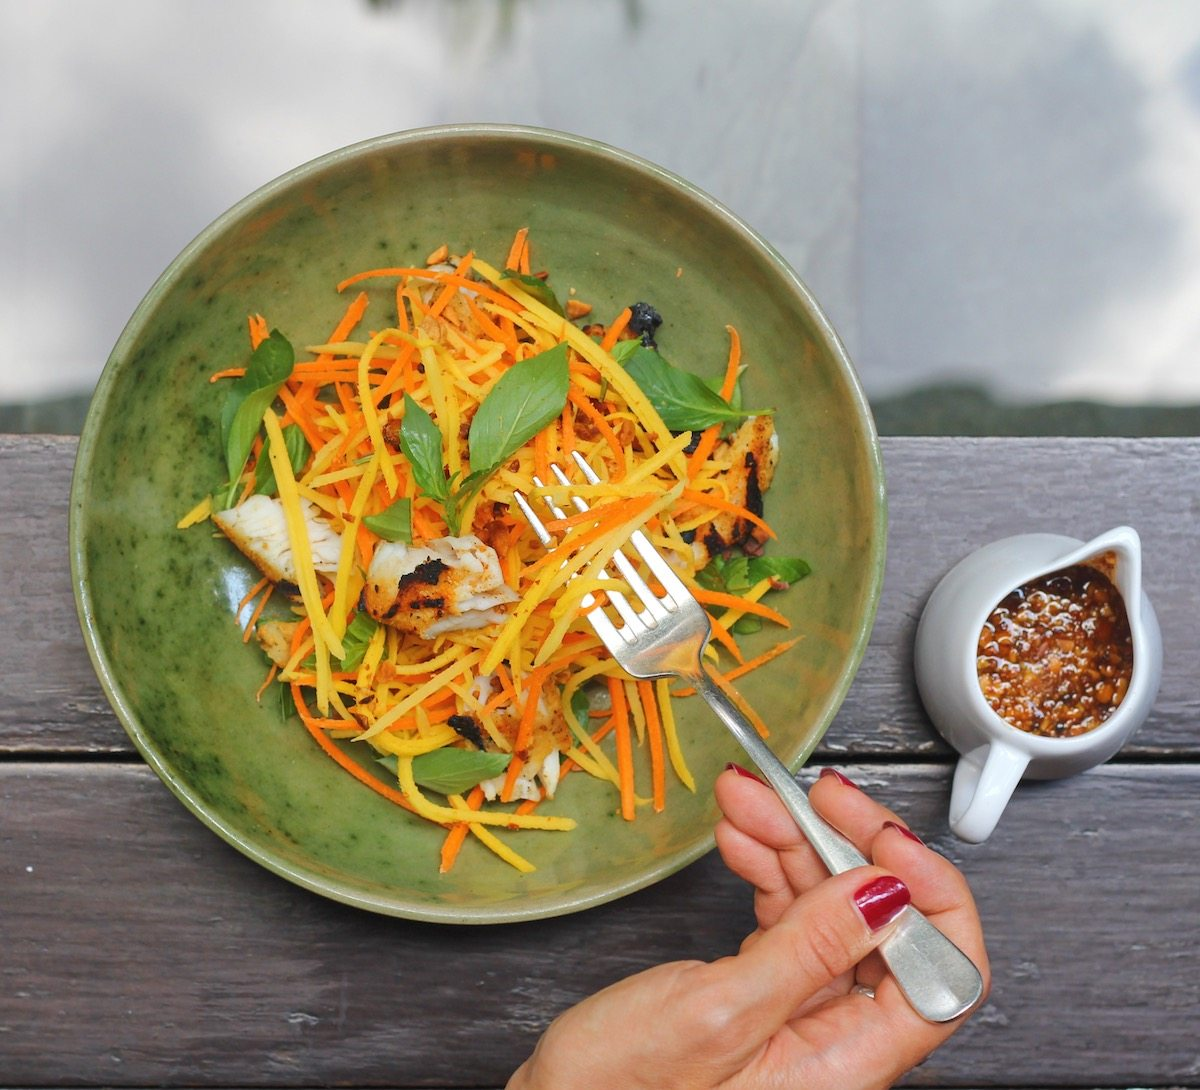 Green Mango Salad from the Chef at Park Hyat Siem Reap